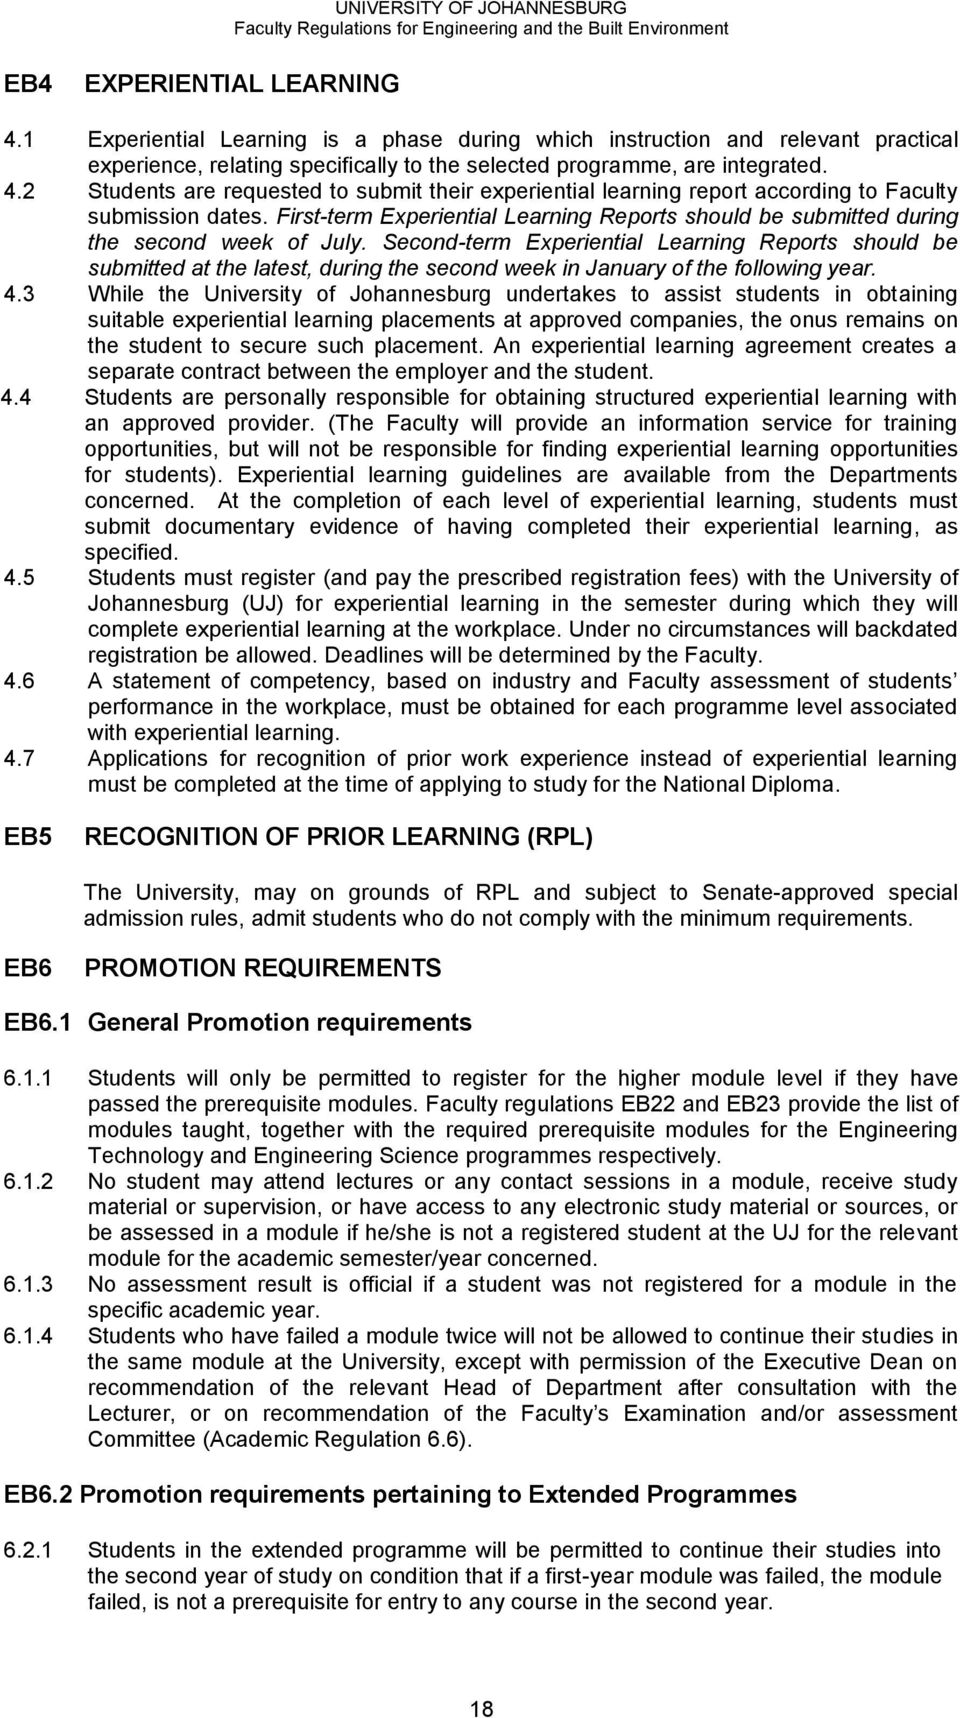 Uj Application Form 2016 Pdf